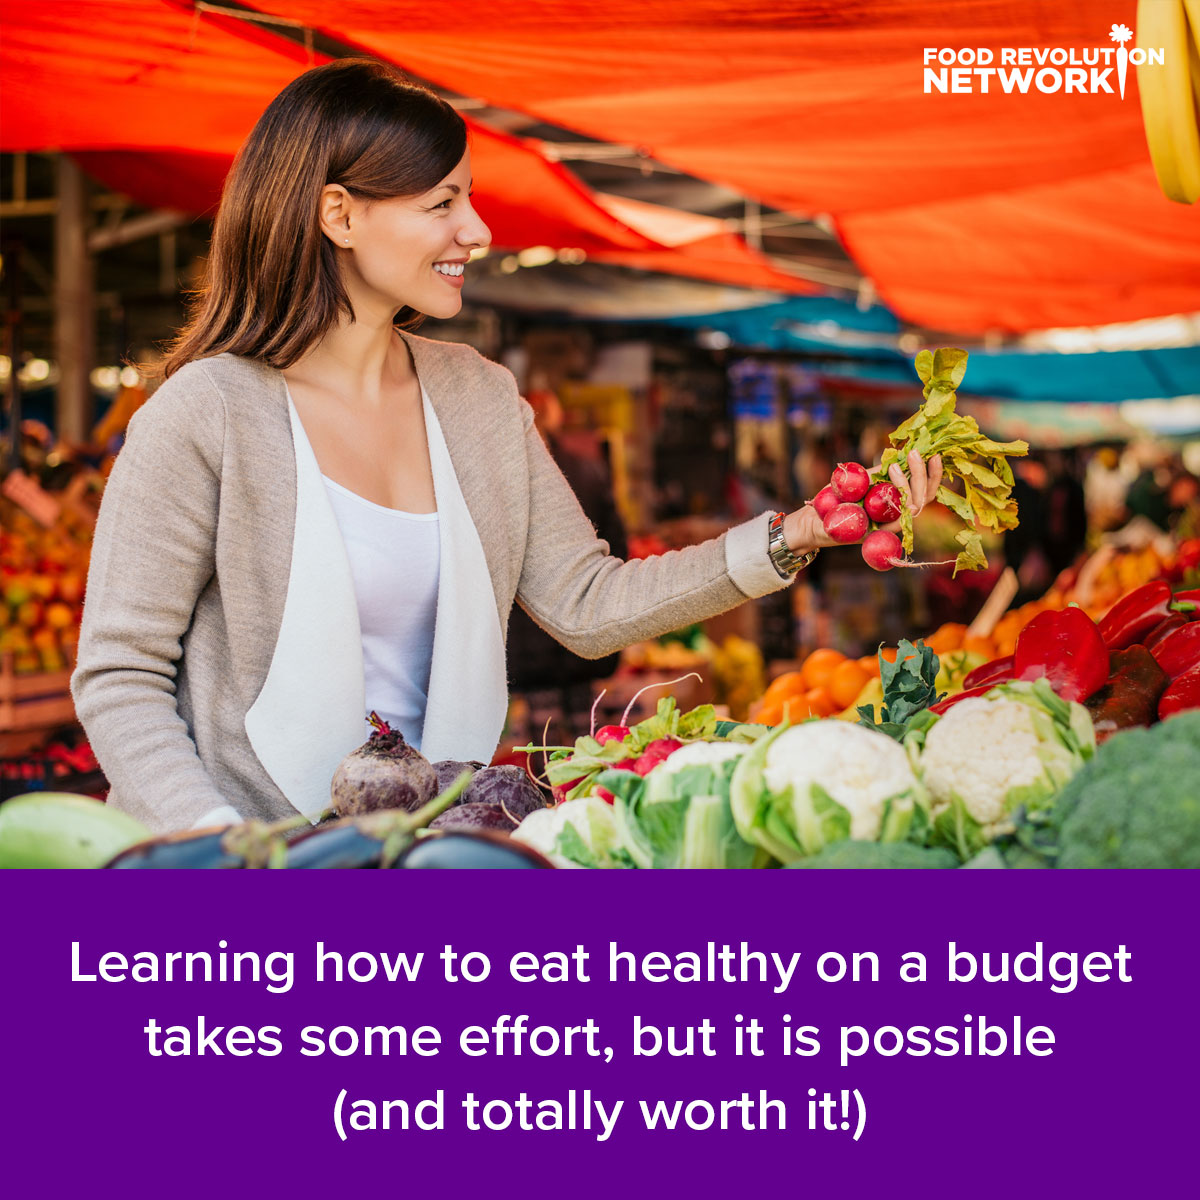 Learning how to eat healthy on a budget takes some effort, but it is possible (and totally worth it!)